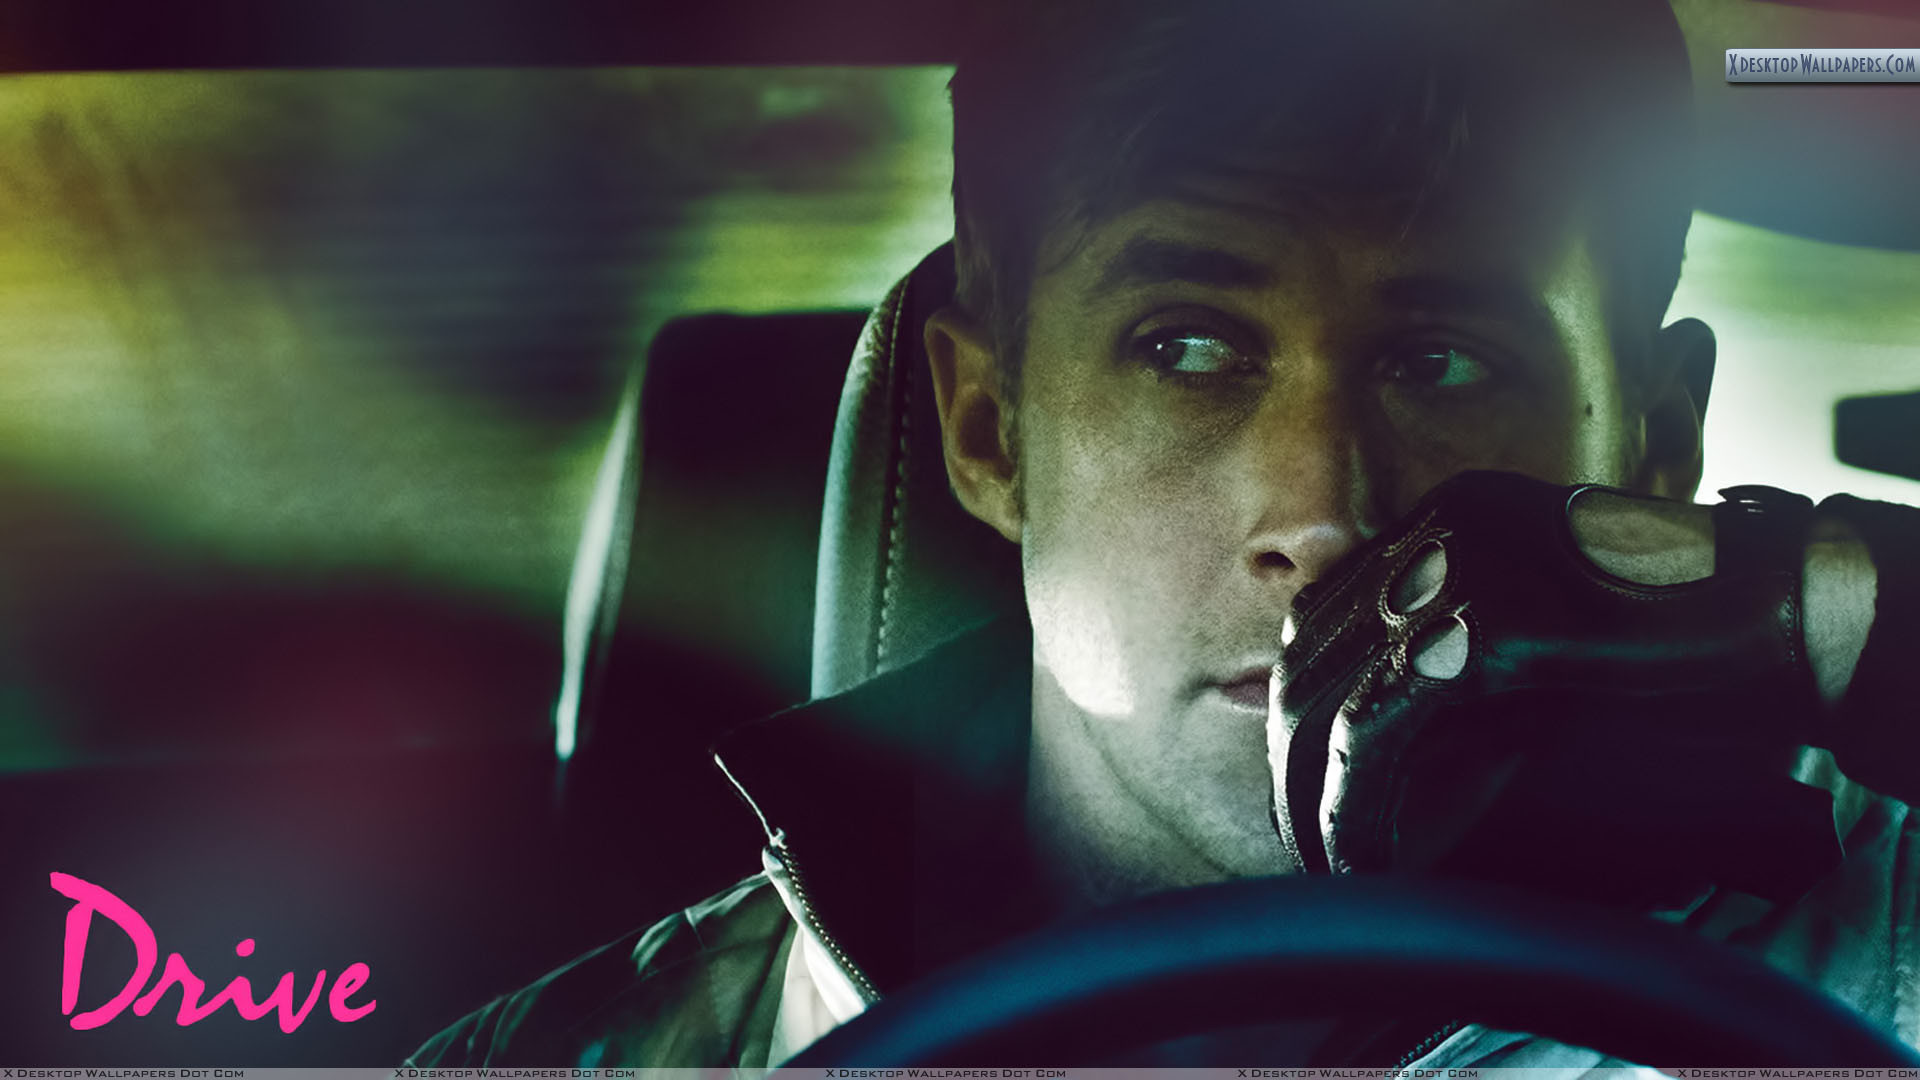 """Res: 1920x1080, You are viewing wallpaper titled """"Drive ..."""